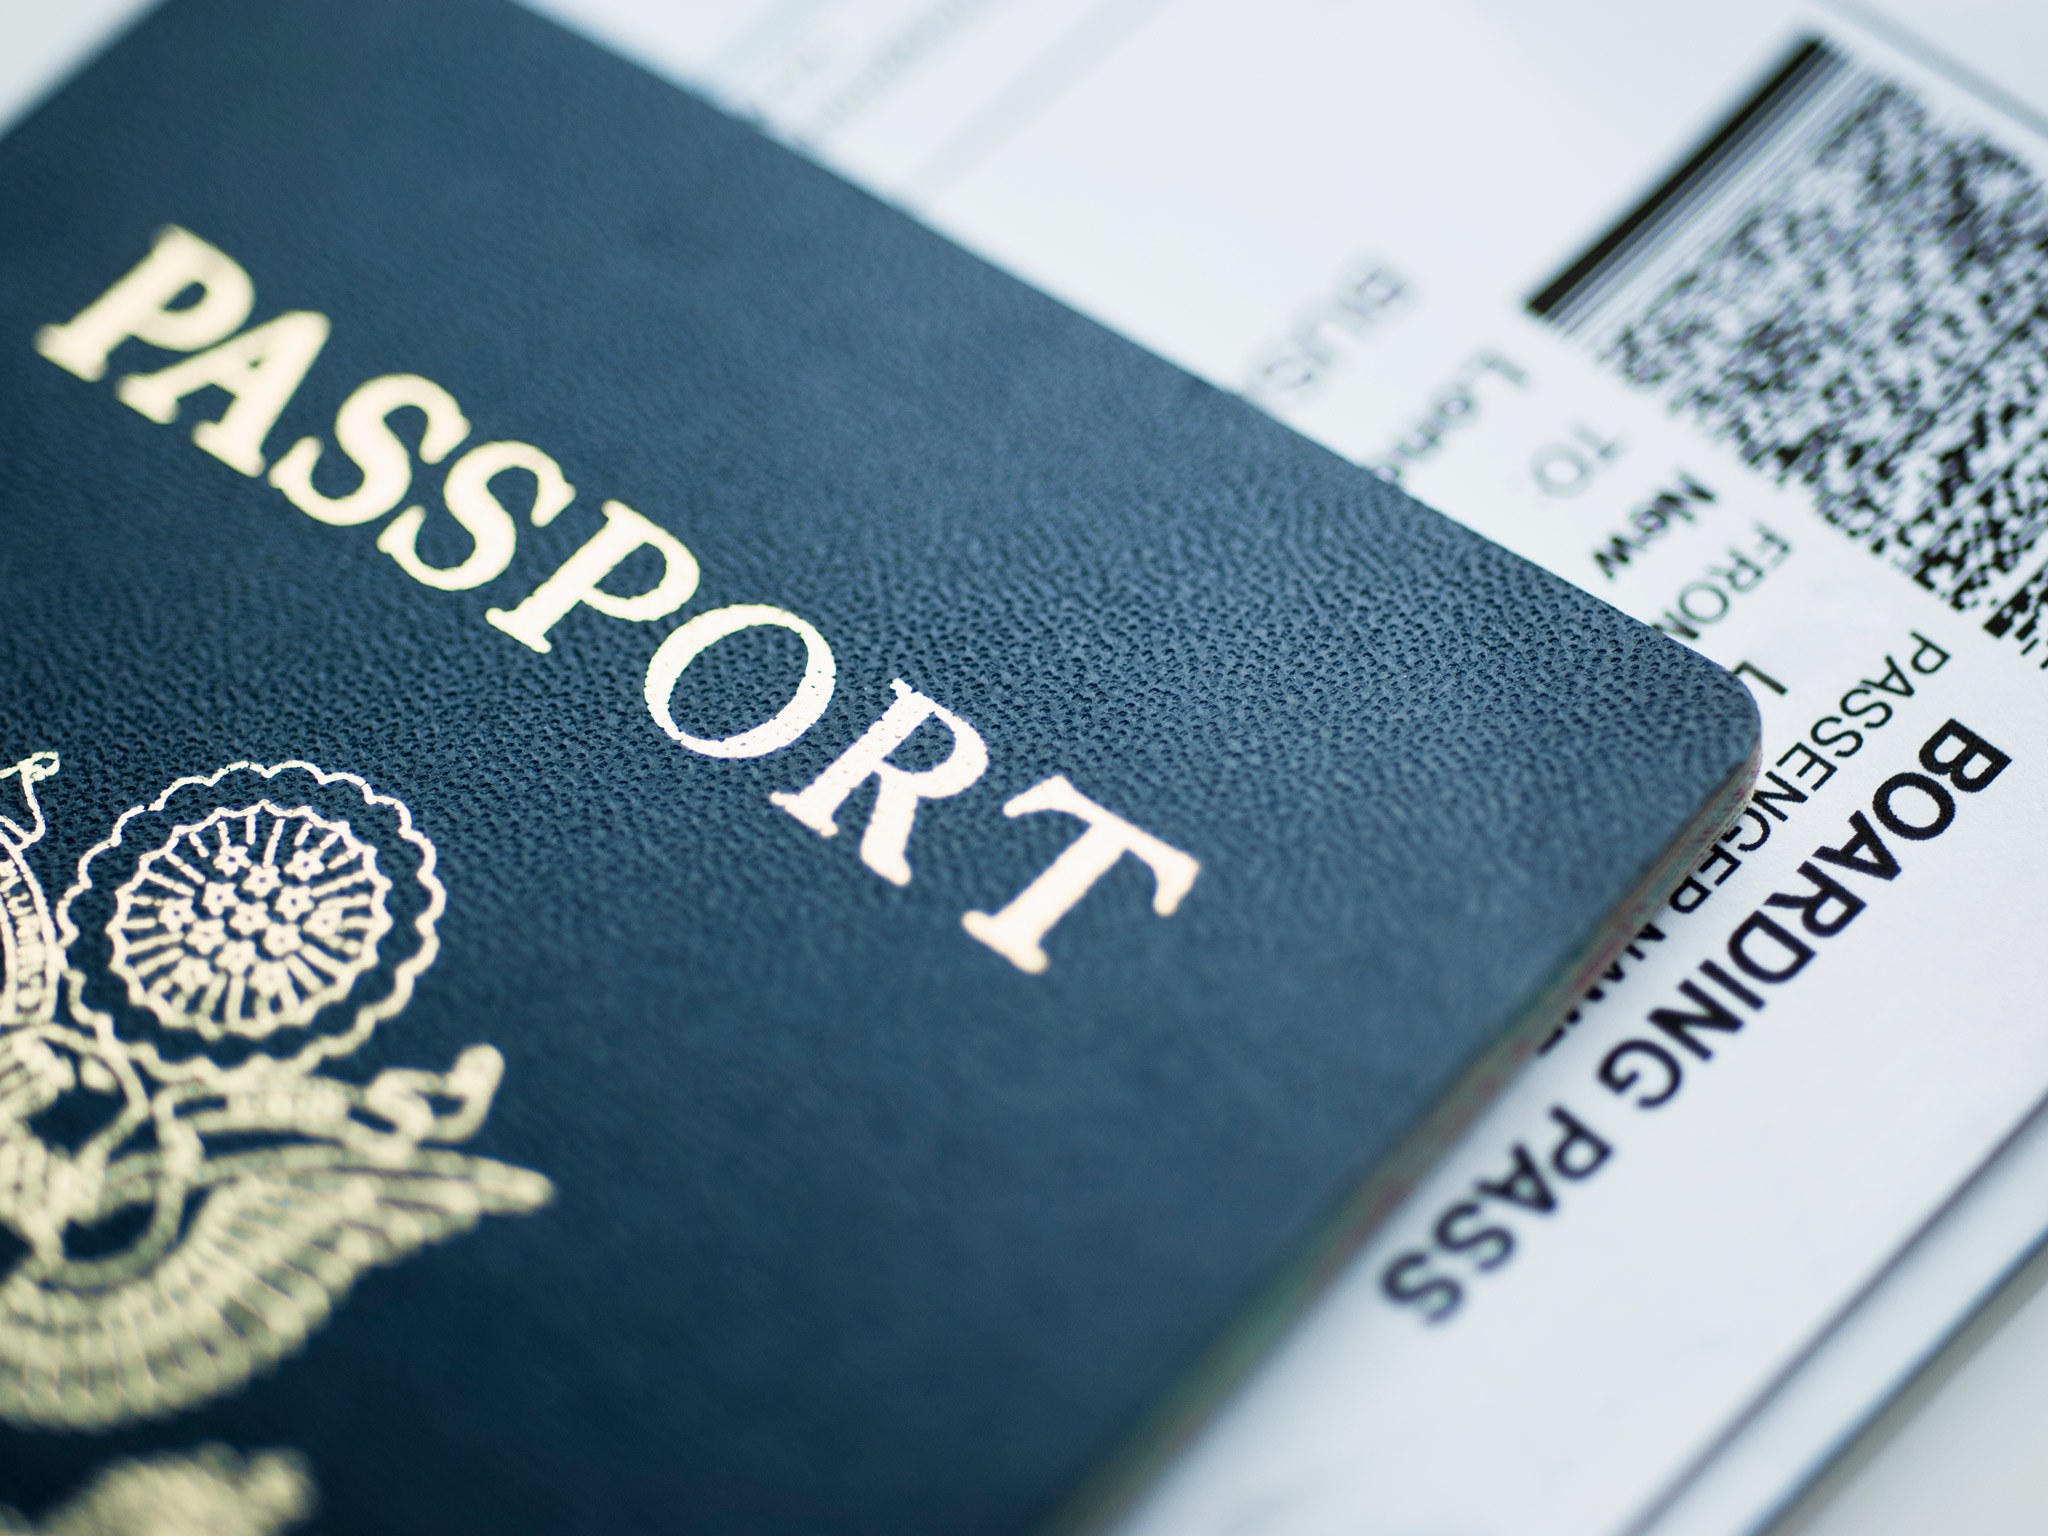 You only need the Apostille Documents if you were married in Las Vegas and live in another country.